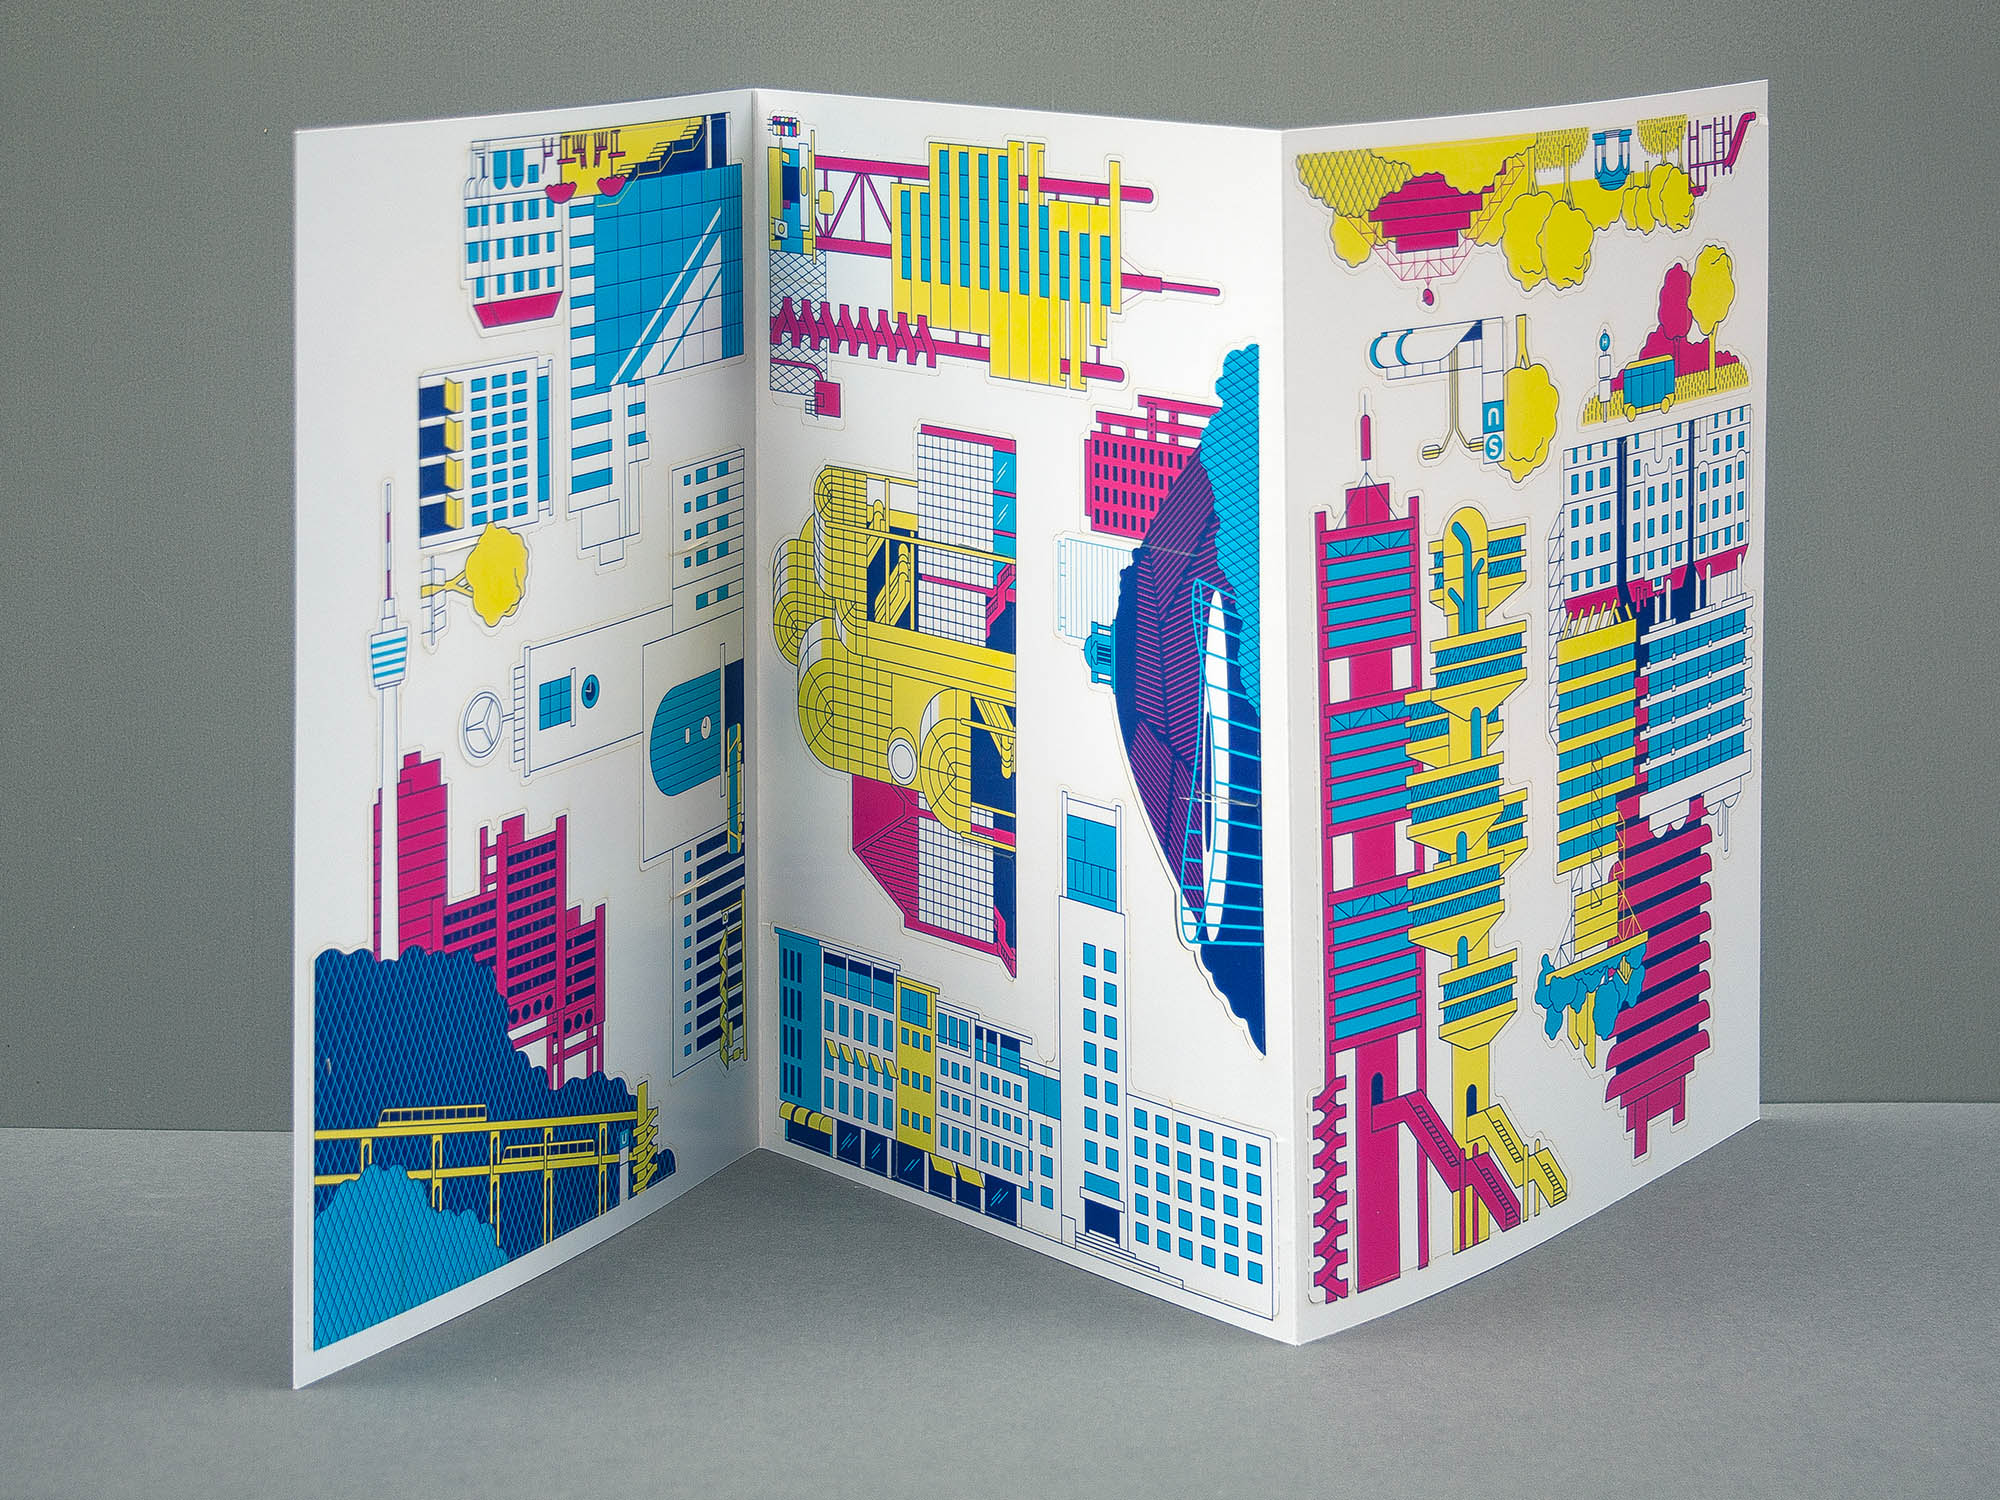 papercraft pop out architecture kit of brutalist and futuristic city. Designed by Axel Pfaender.